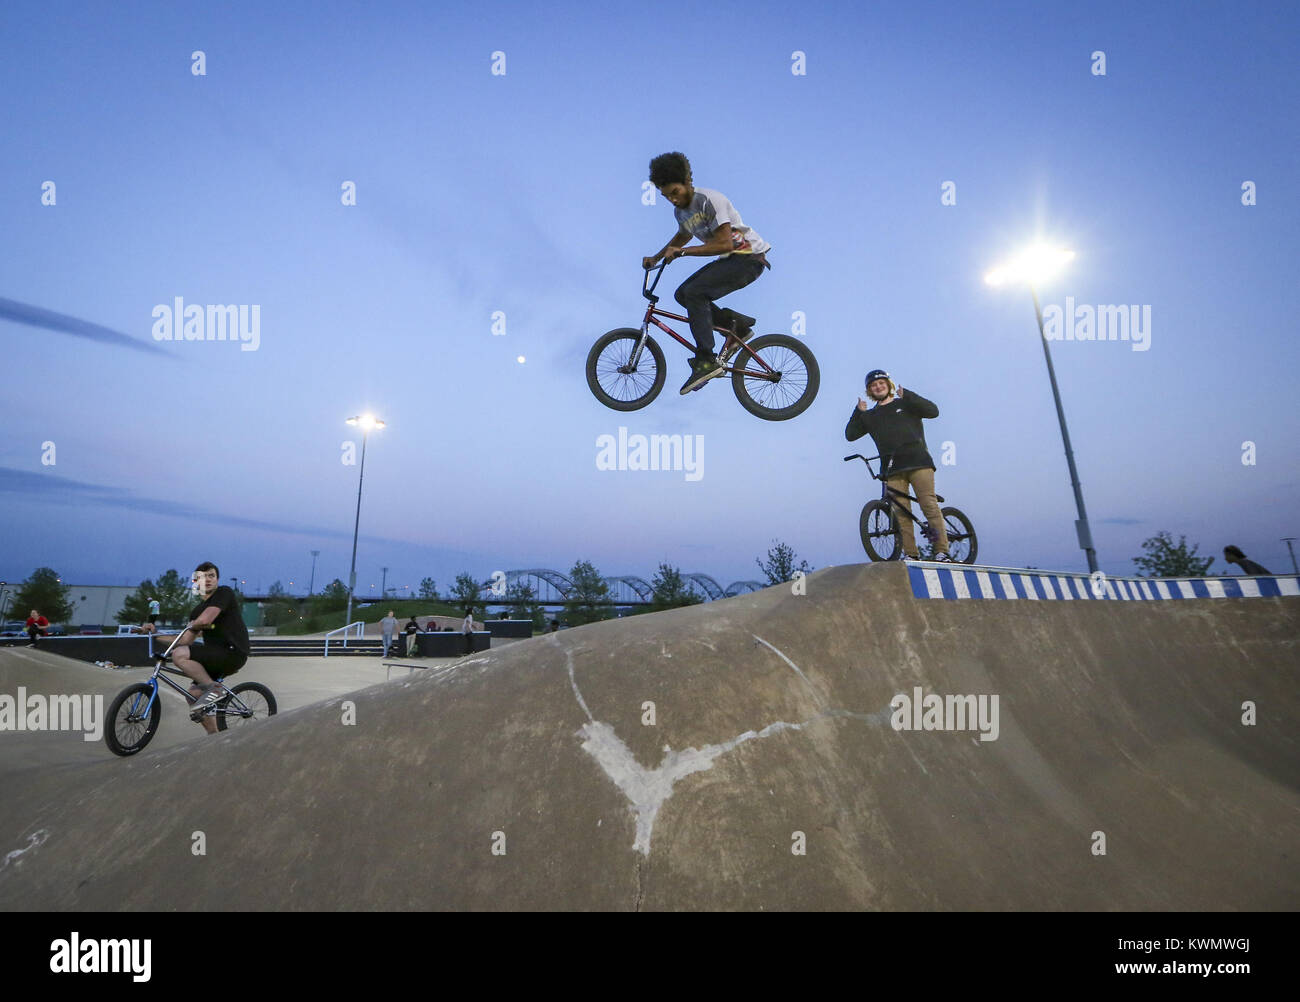 Davenport, Iowa, USA. 8th May, 2017. Adrian McBride, 16, of Rock Island airs out of a roll-in ramp with a hip landing - Stock Image